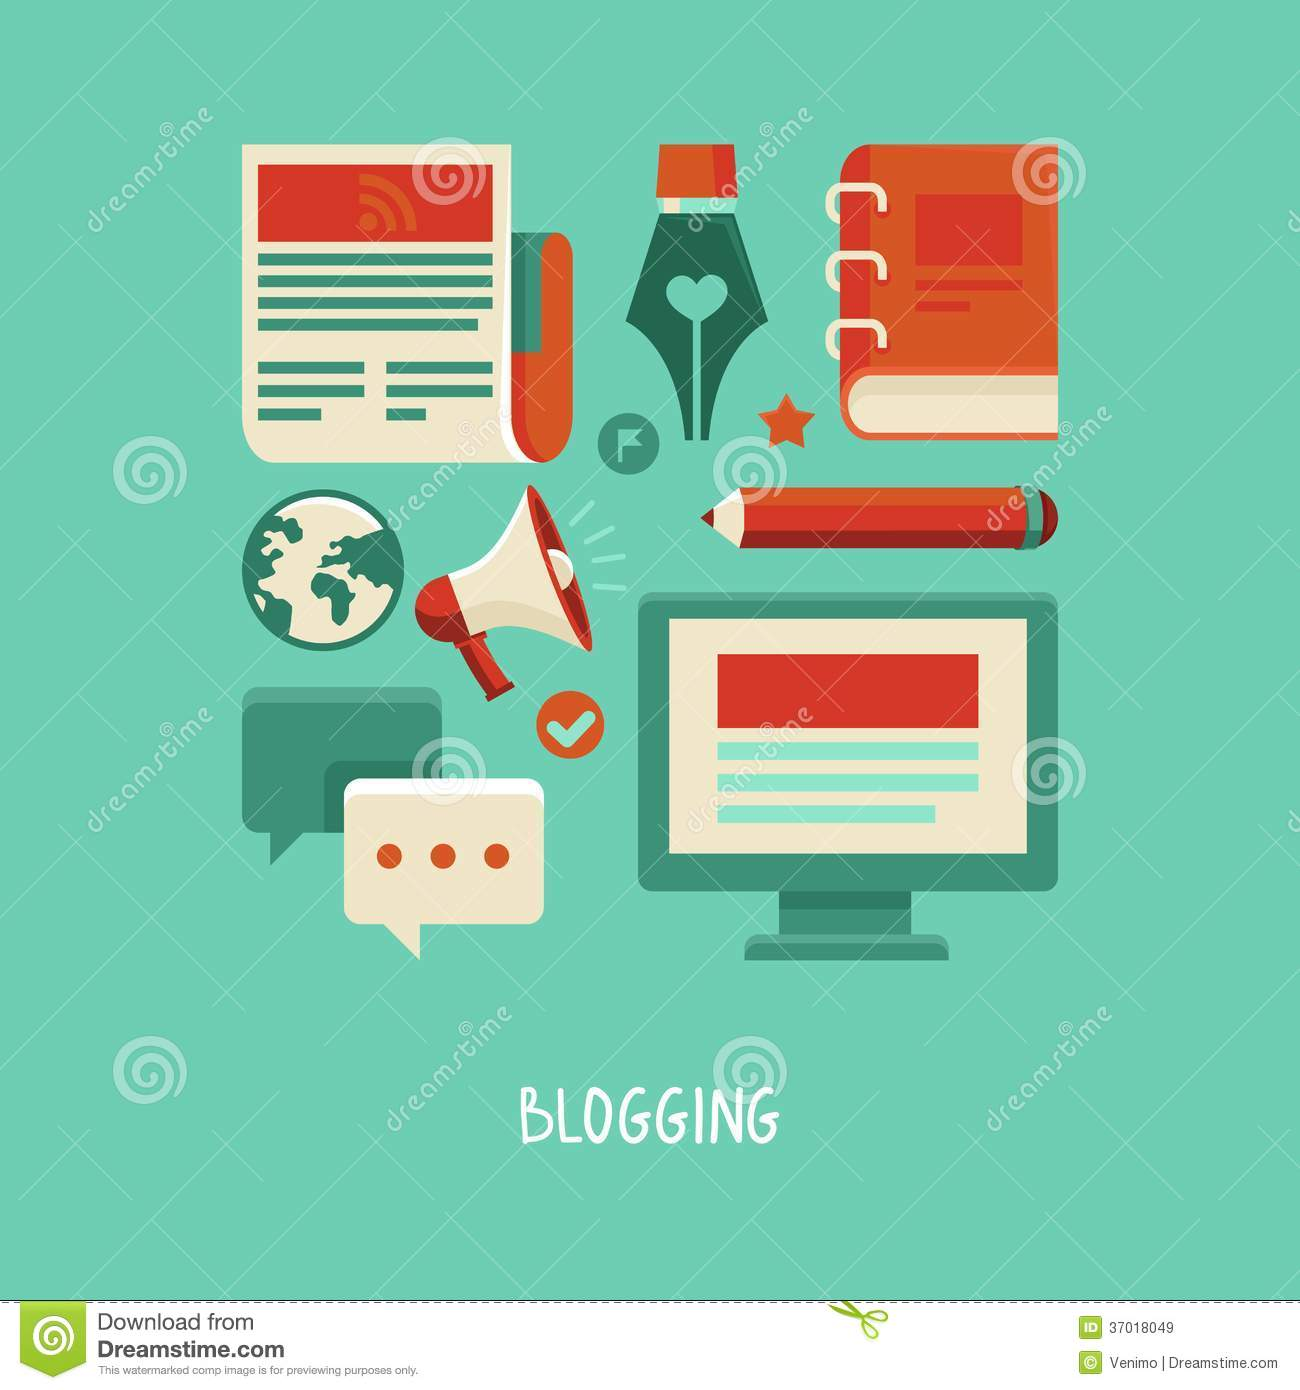 Blogging and writing - flat icons